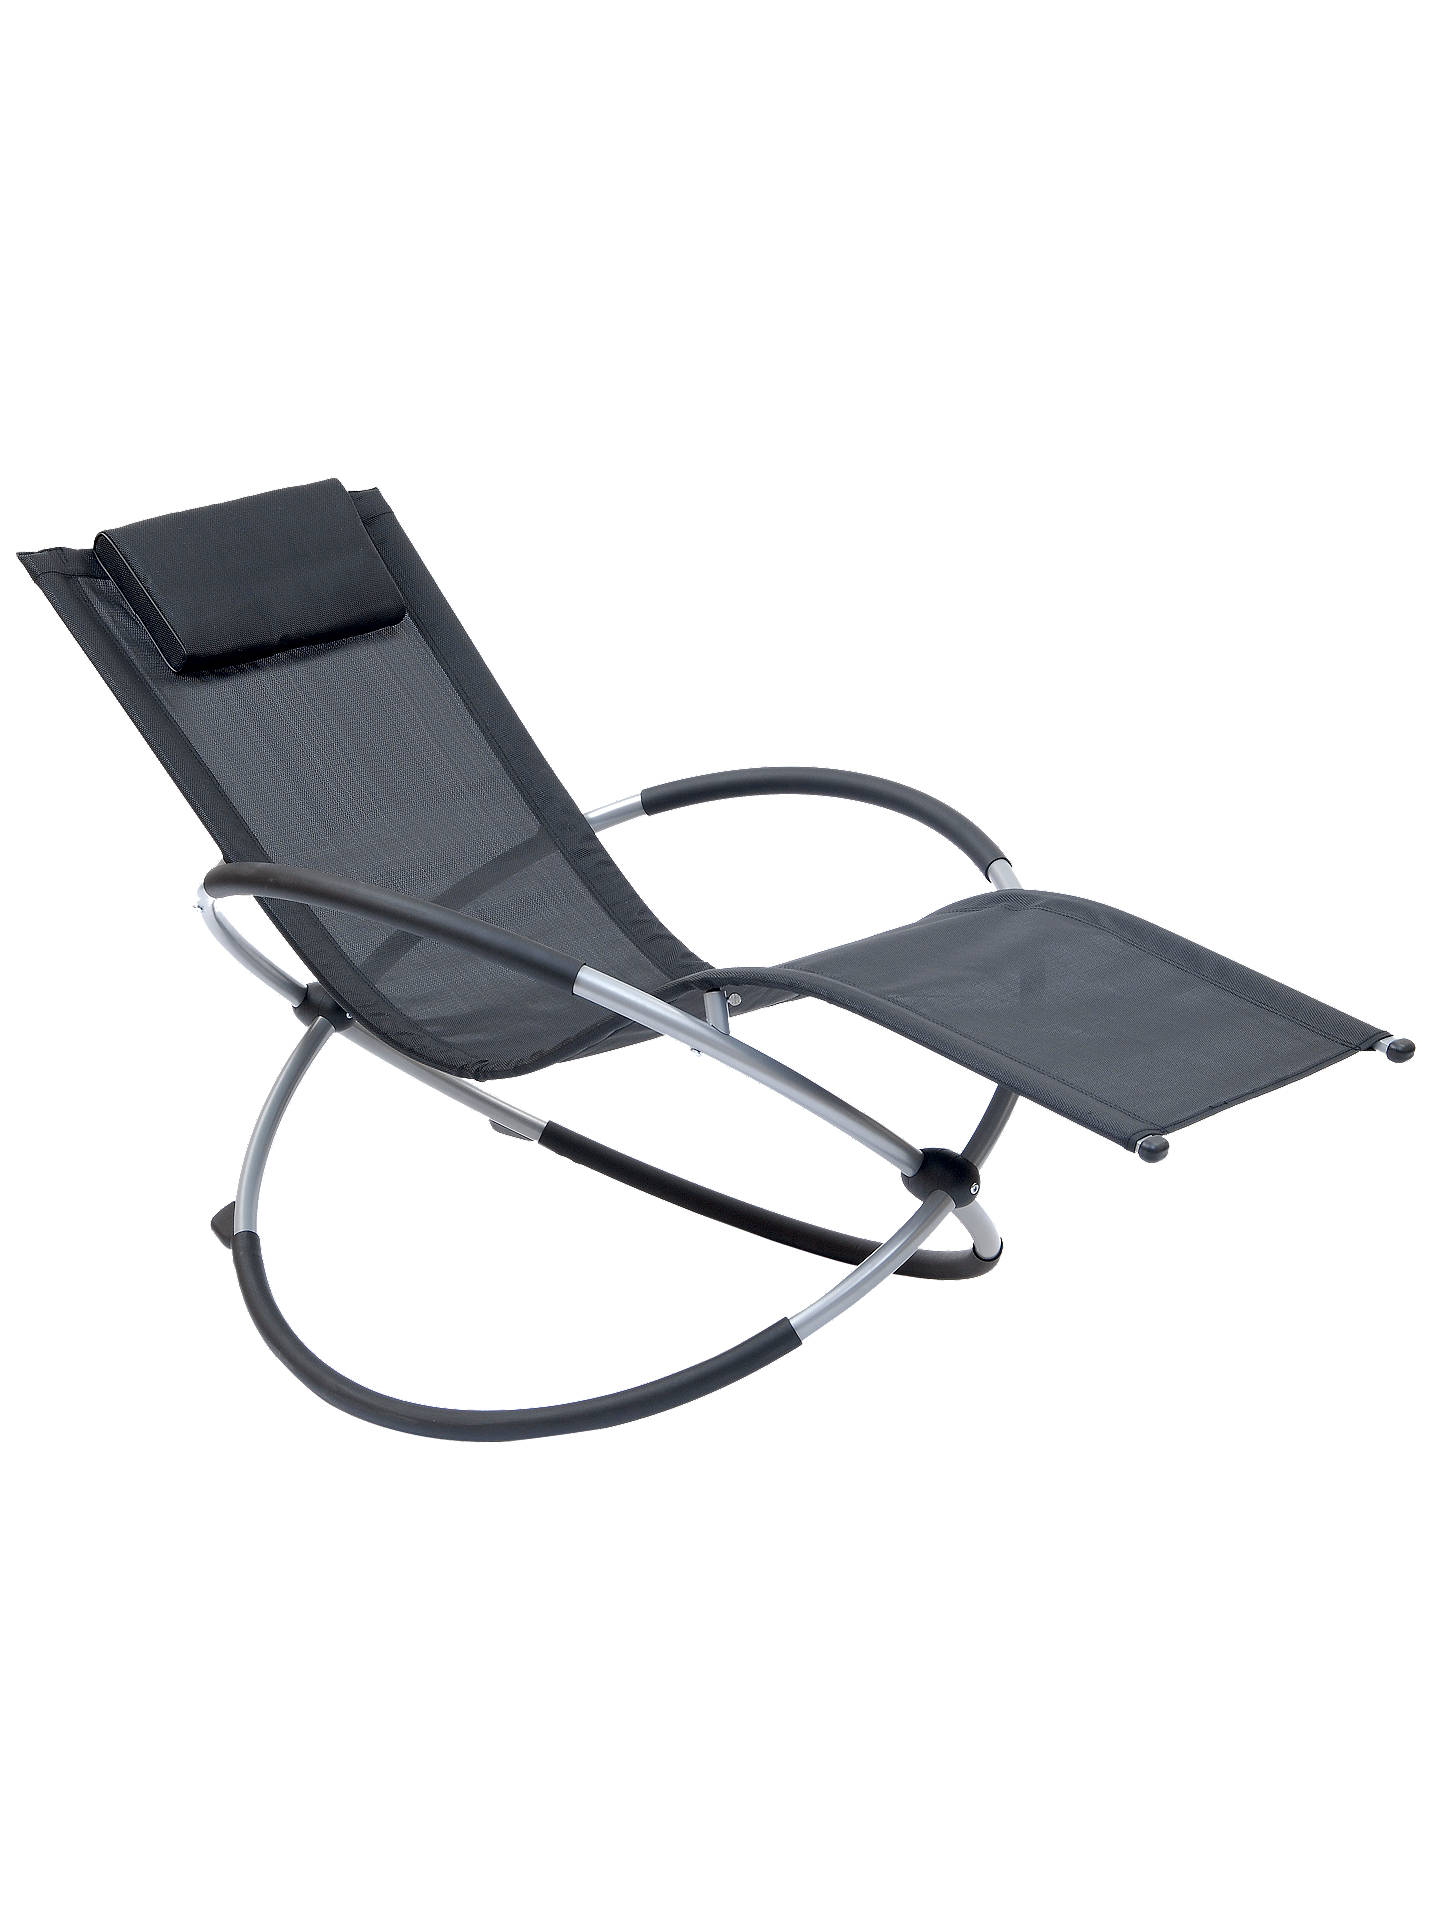 Buy Suntime Orbit Relaxer Rocking Sun Lounger, Black Online at johnlewis.com